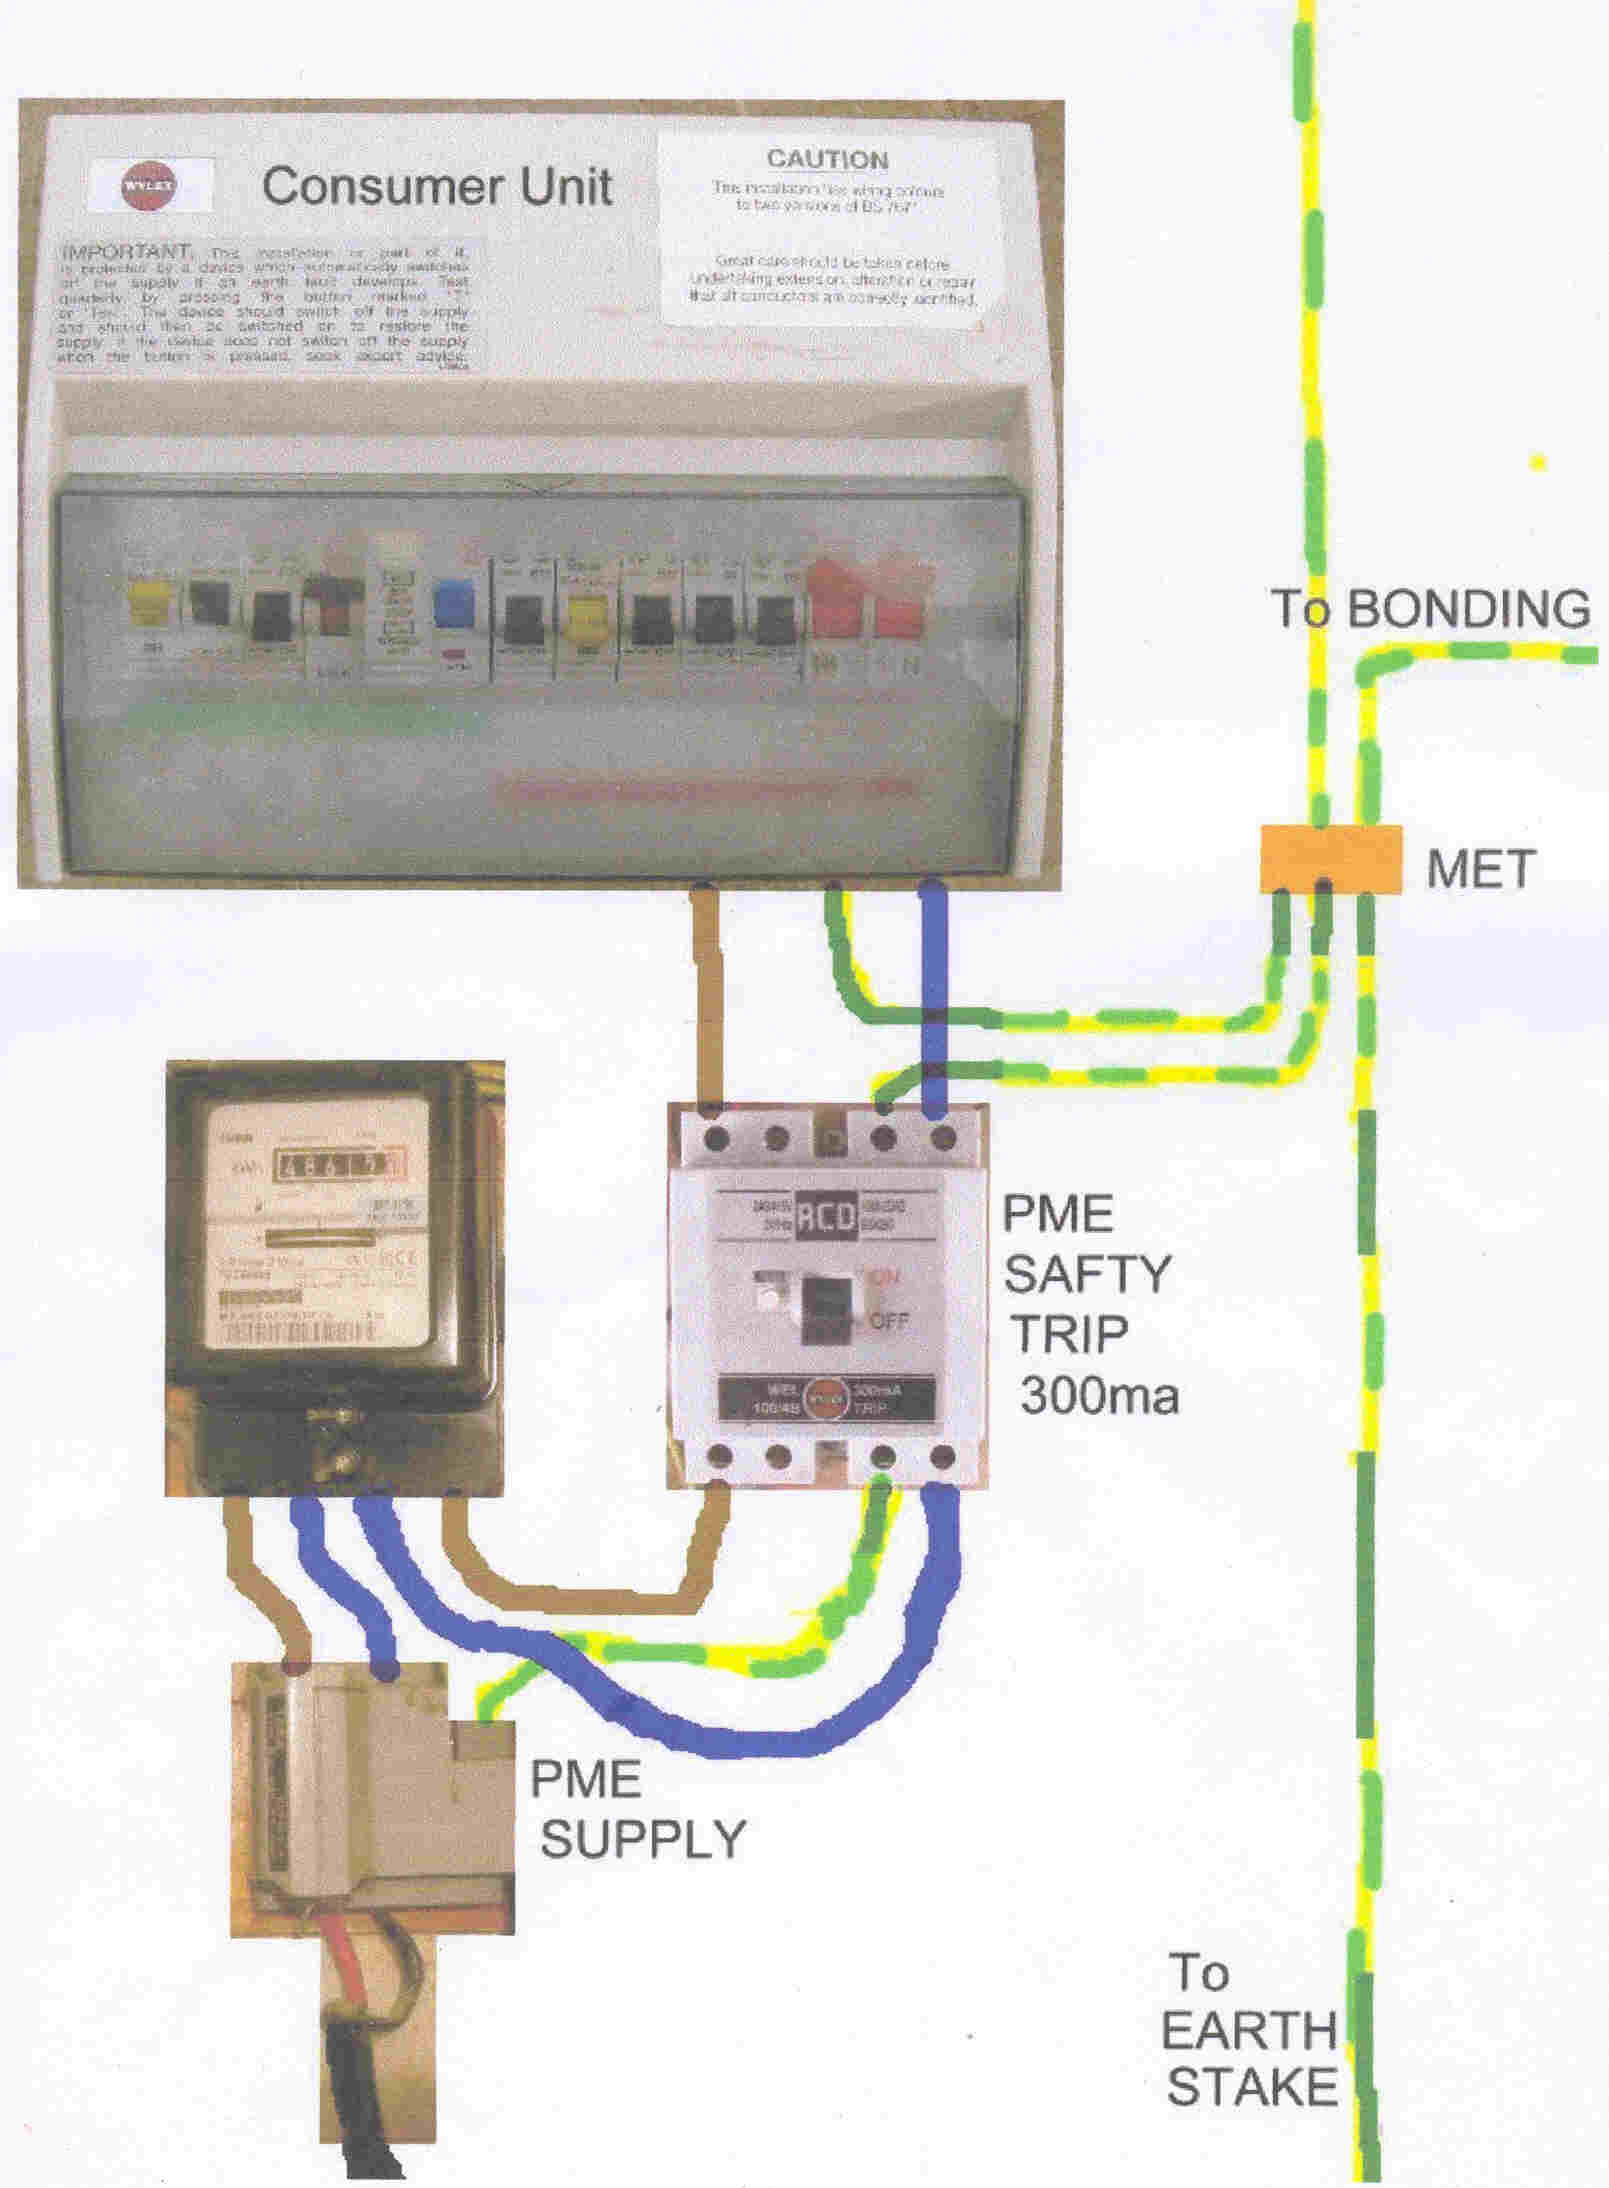 Iet Forums Application Of The Proposed Regulation 5421201 Split Load Consumer Unit Wiring Diagram You Could Try This Method